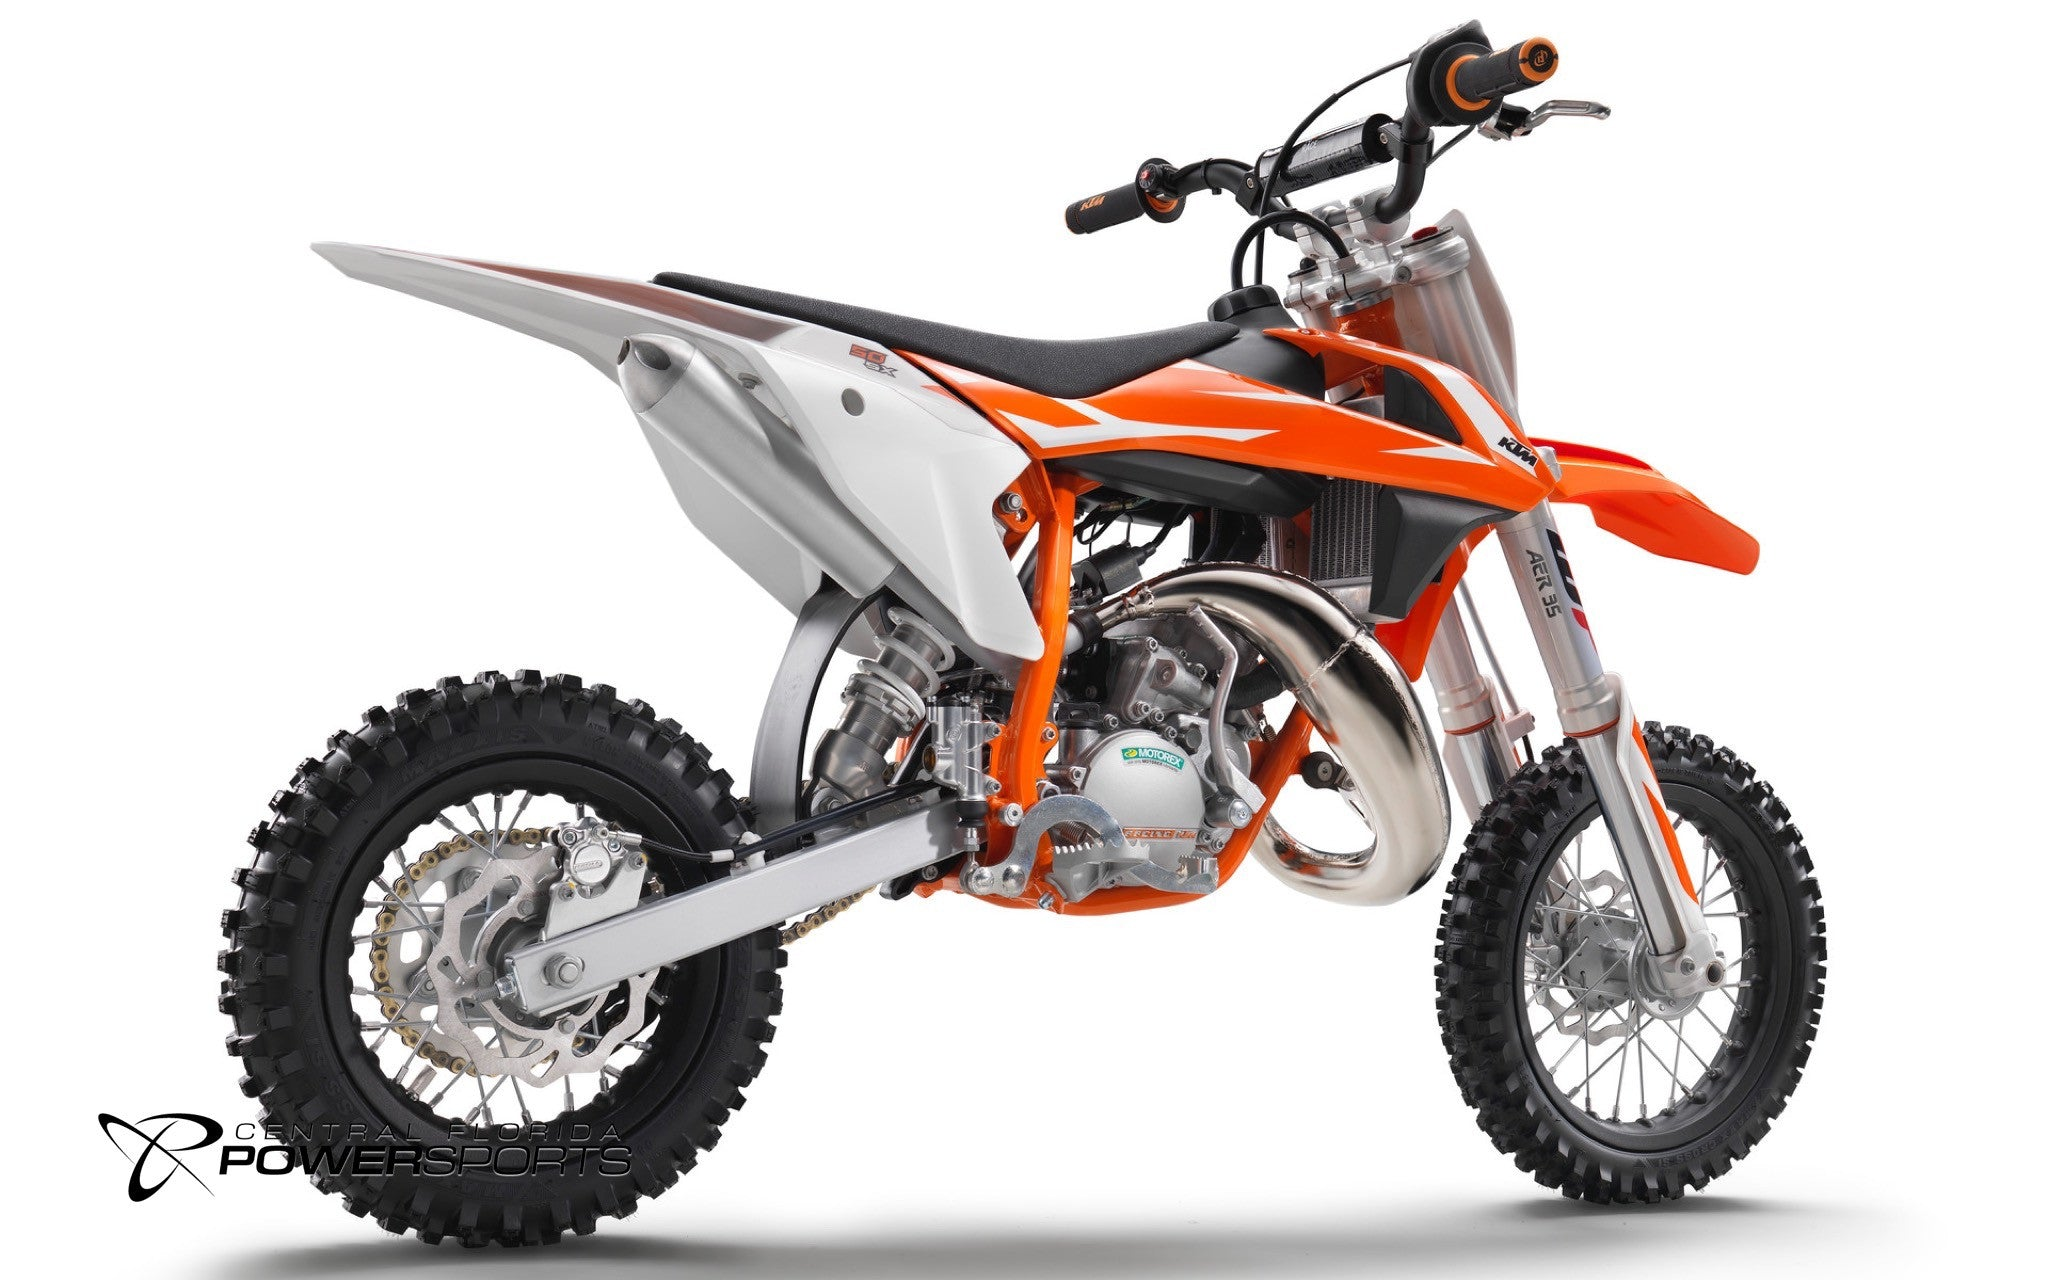 2018 ktm 50 sx price.  price 2018 ktm 50 sx  motorcycle for sale central florida powersports to ktm sx price s